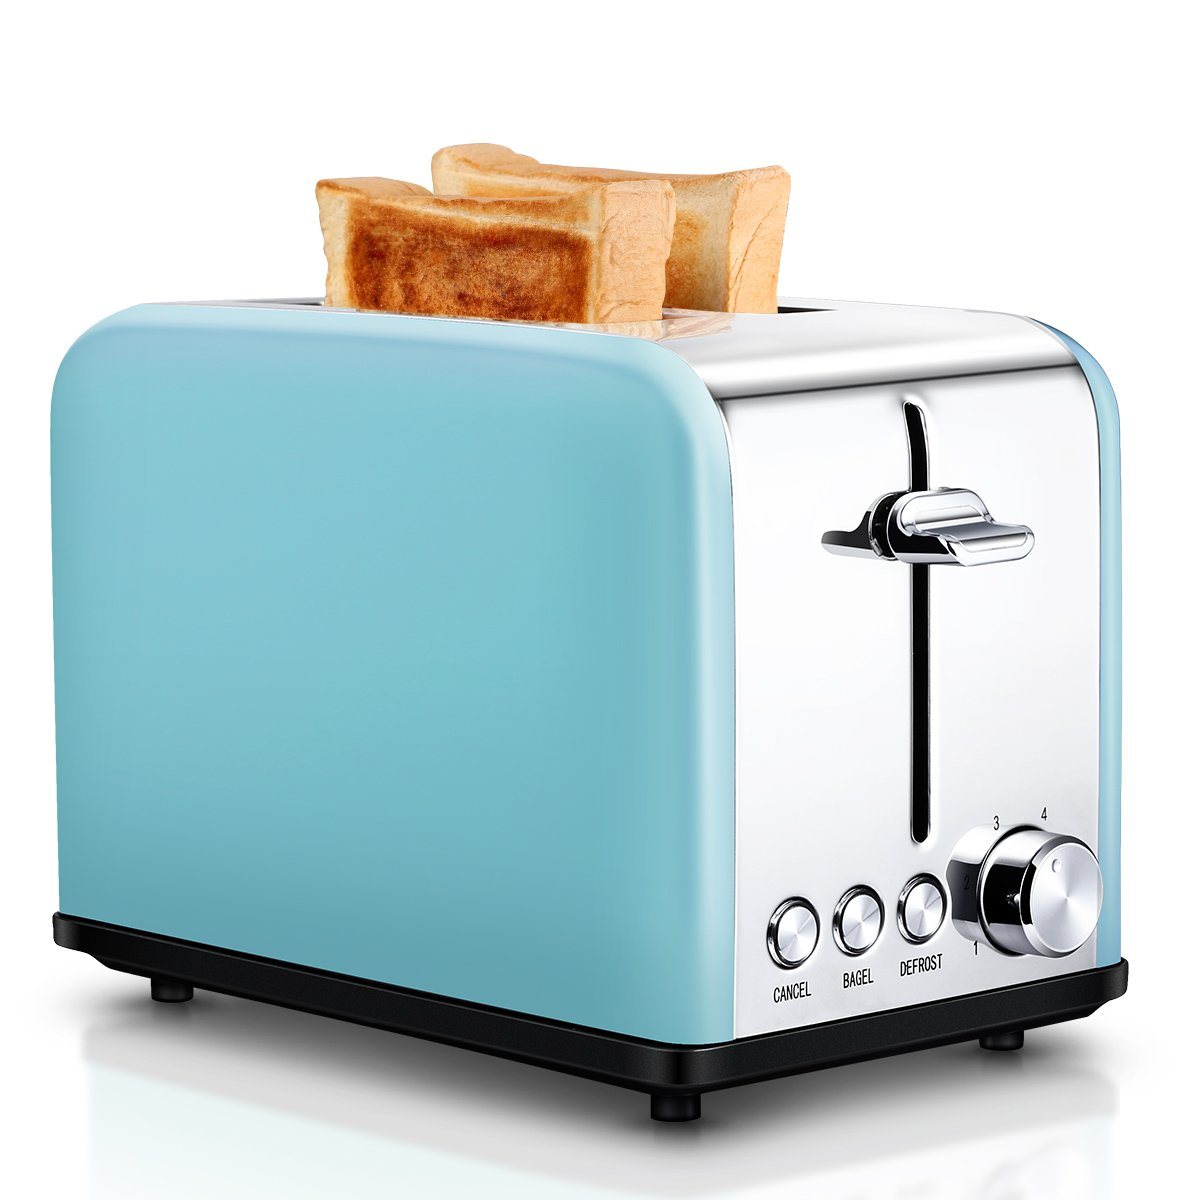 Toaster 2 Slice, Retro Small Toaster with Bagel, Cancel, Defrost Function, Extra Wide Slot Compact Stainless Steel Toasters for Bread Waffles, Blue by KEEMO